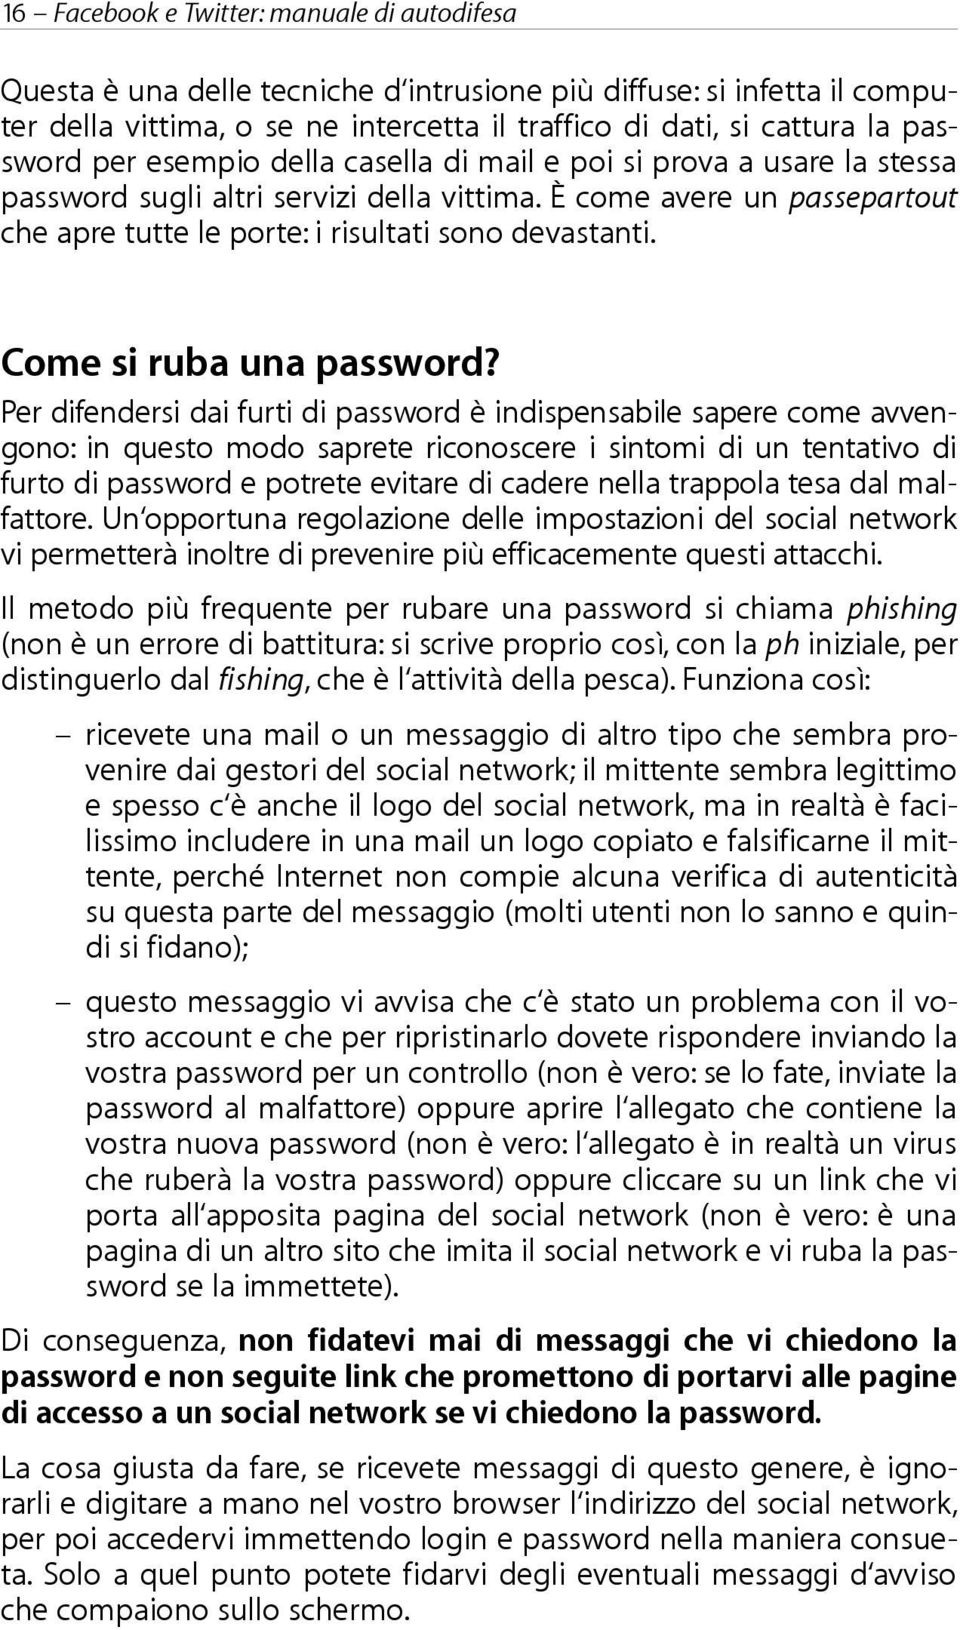 Come si ruba una password?